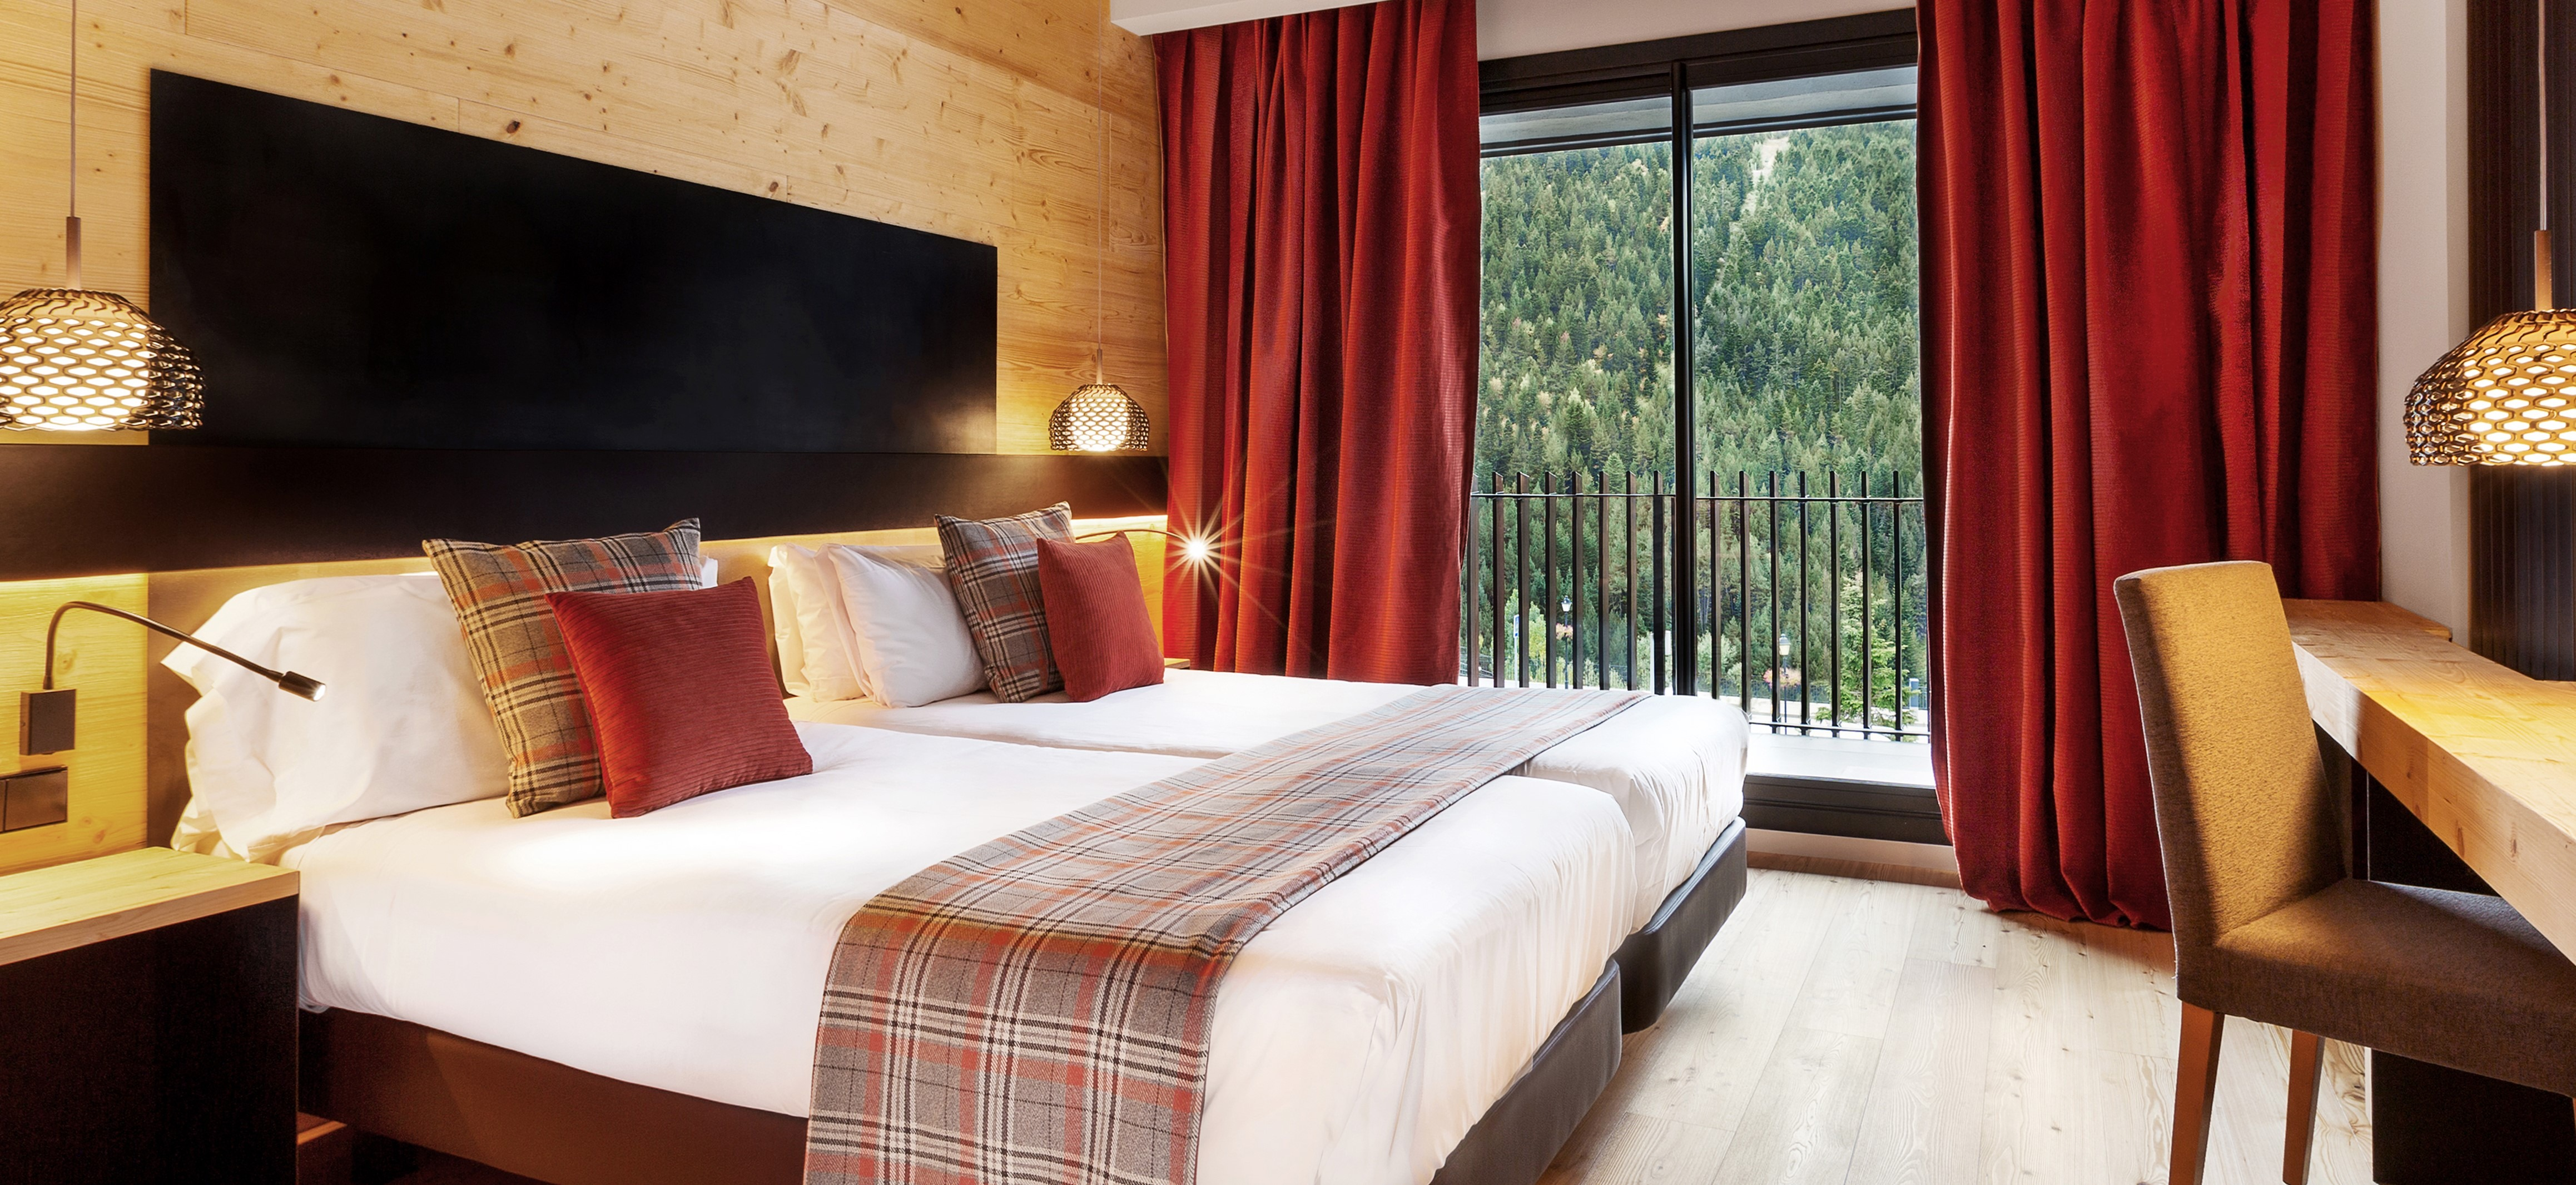 Park Piolets MountainHotel & Spa